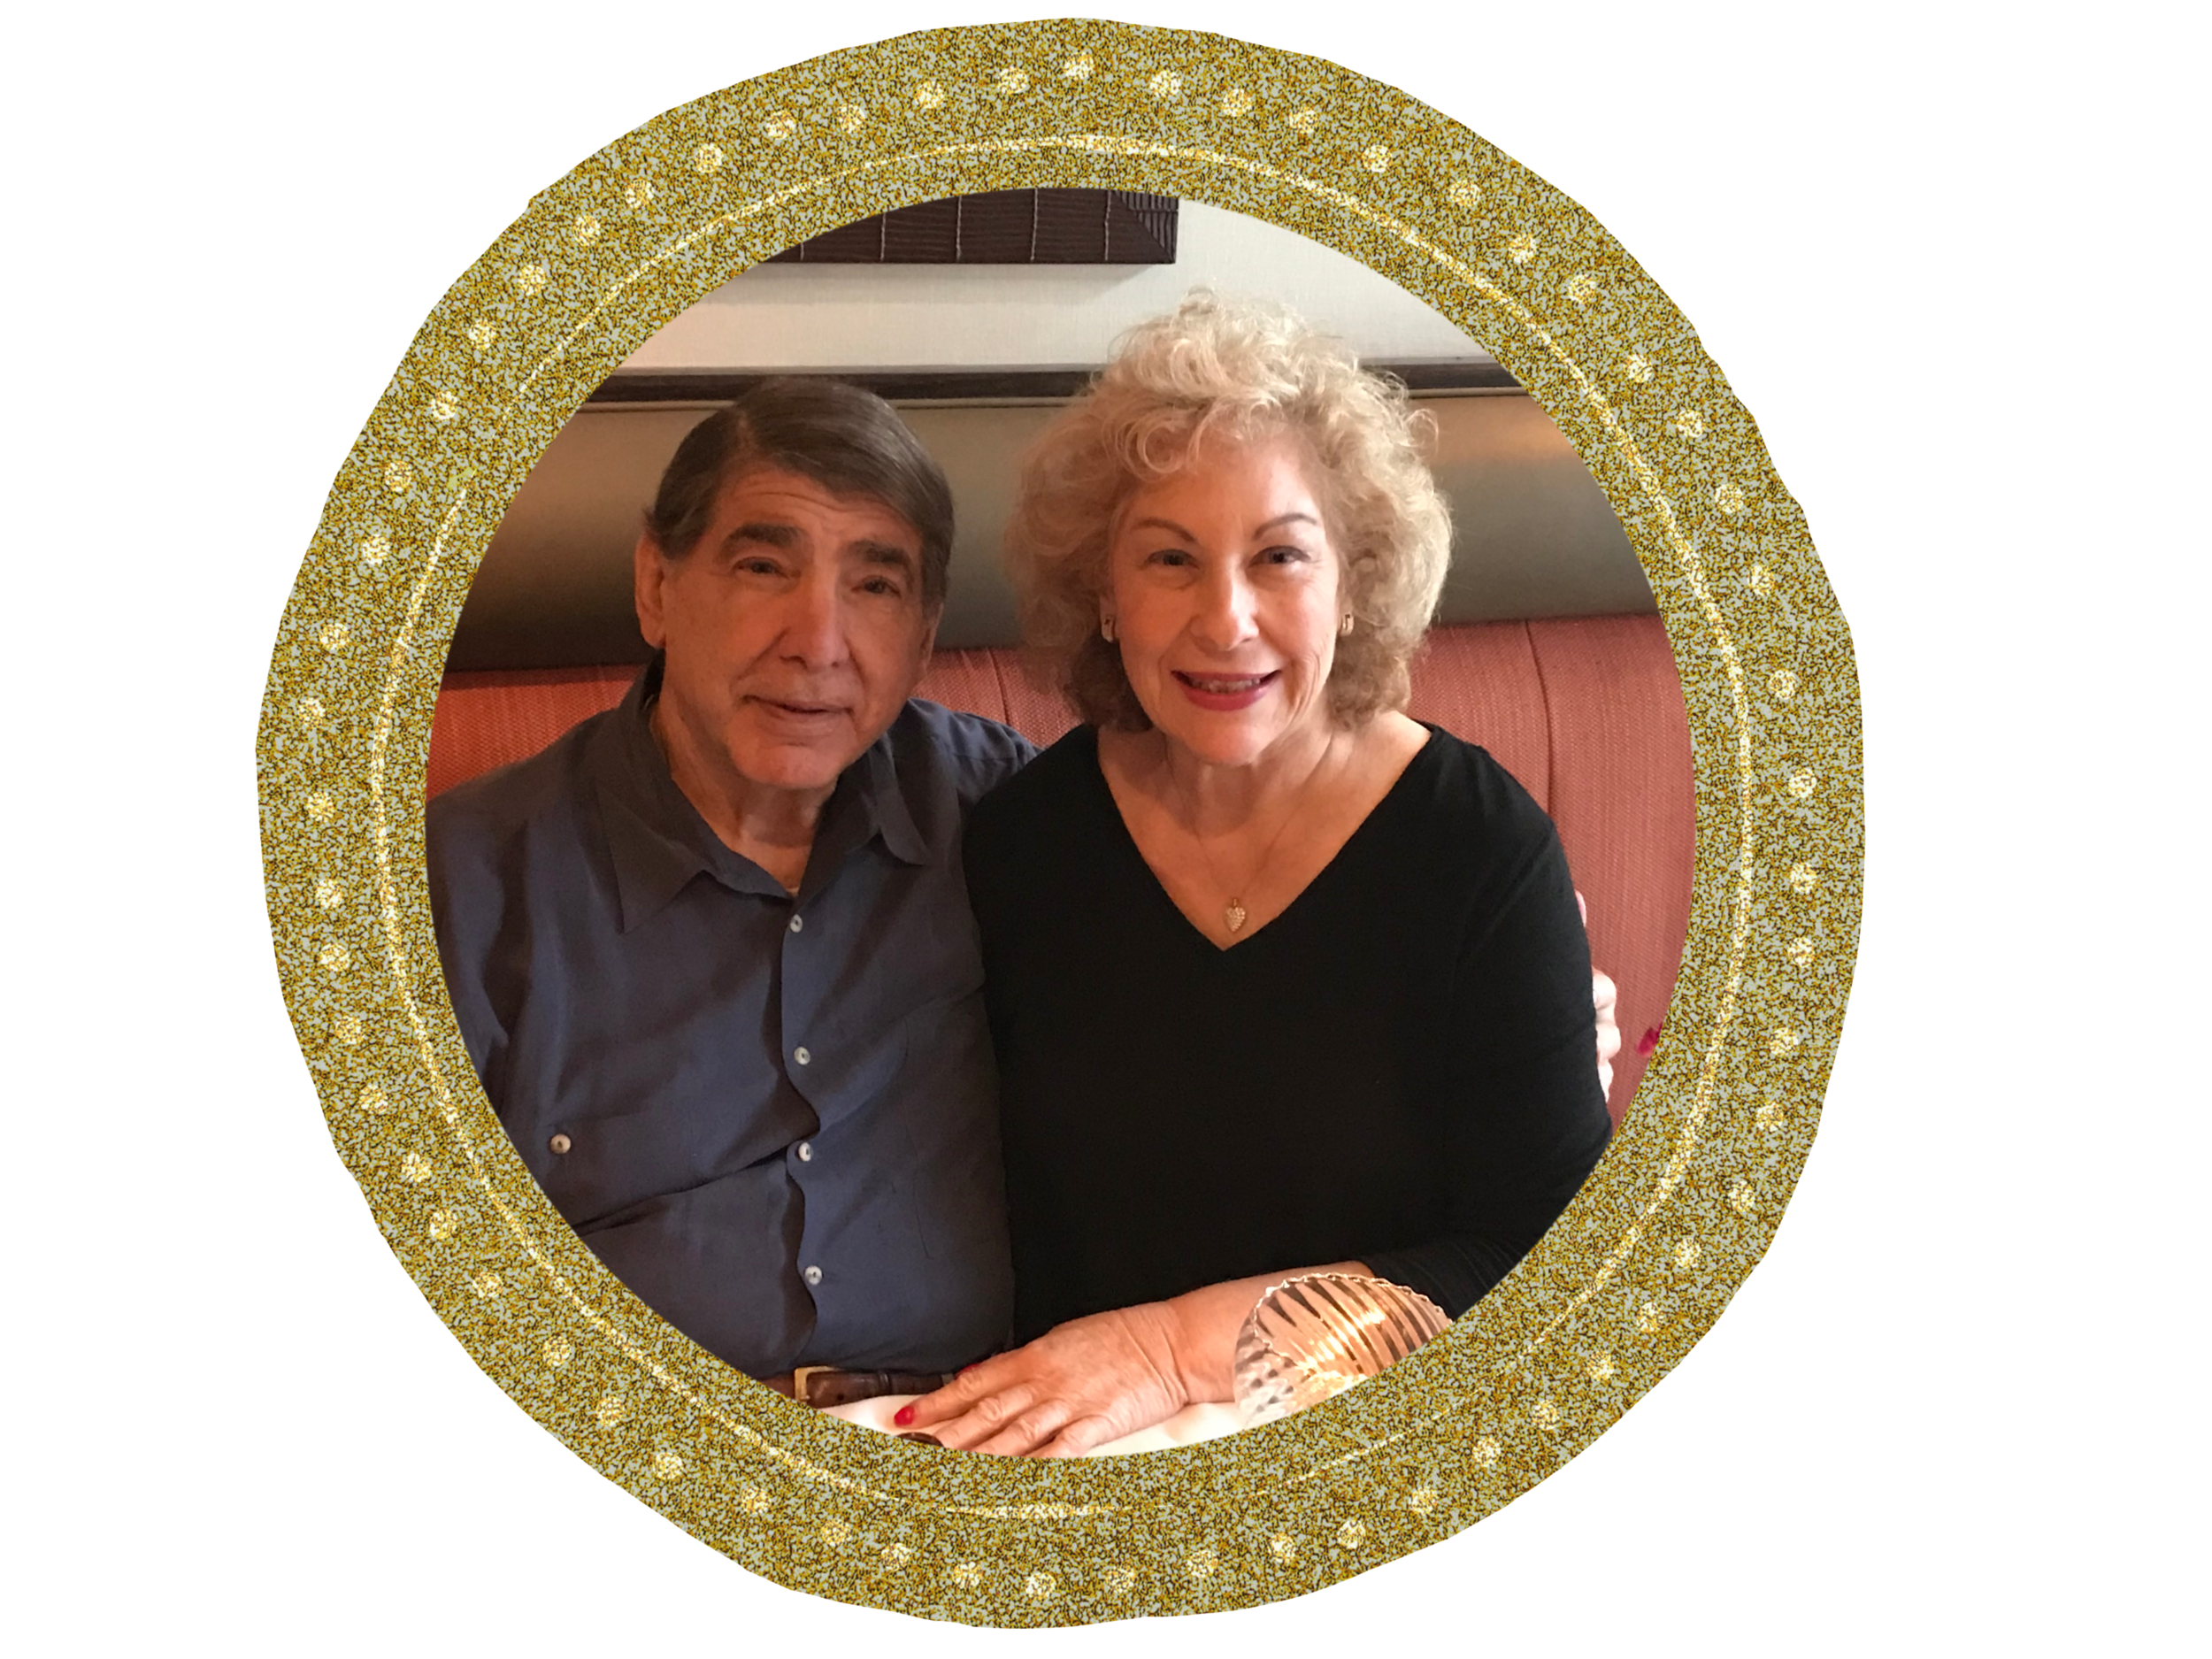 Joanne and Irv's Wedding - August 25, 2019In lieu of wedding gifts Joanne and Irv want to share their love and joy with Beth Chaim